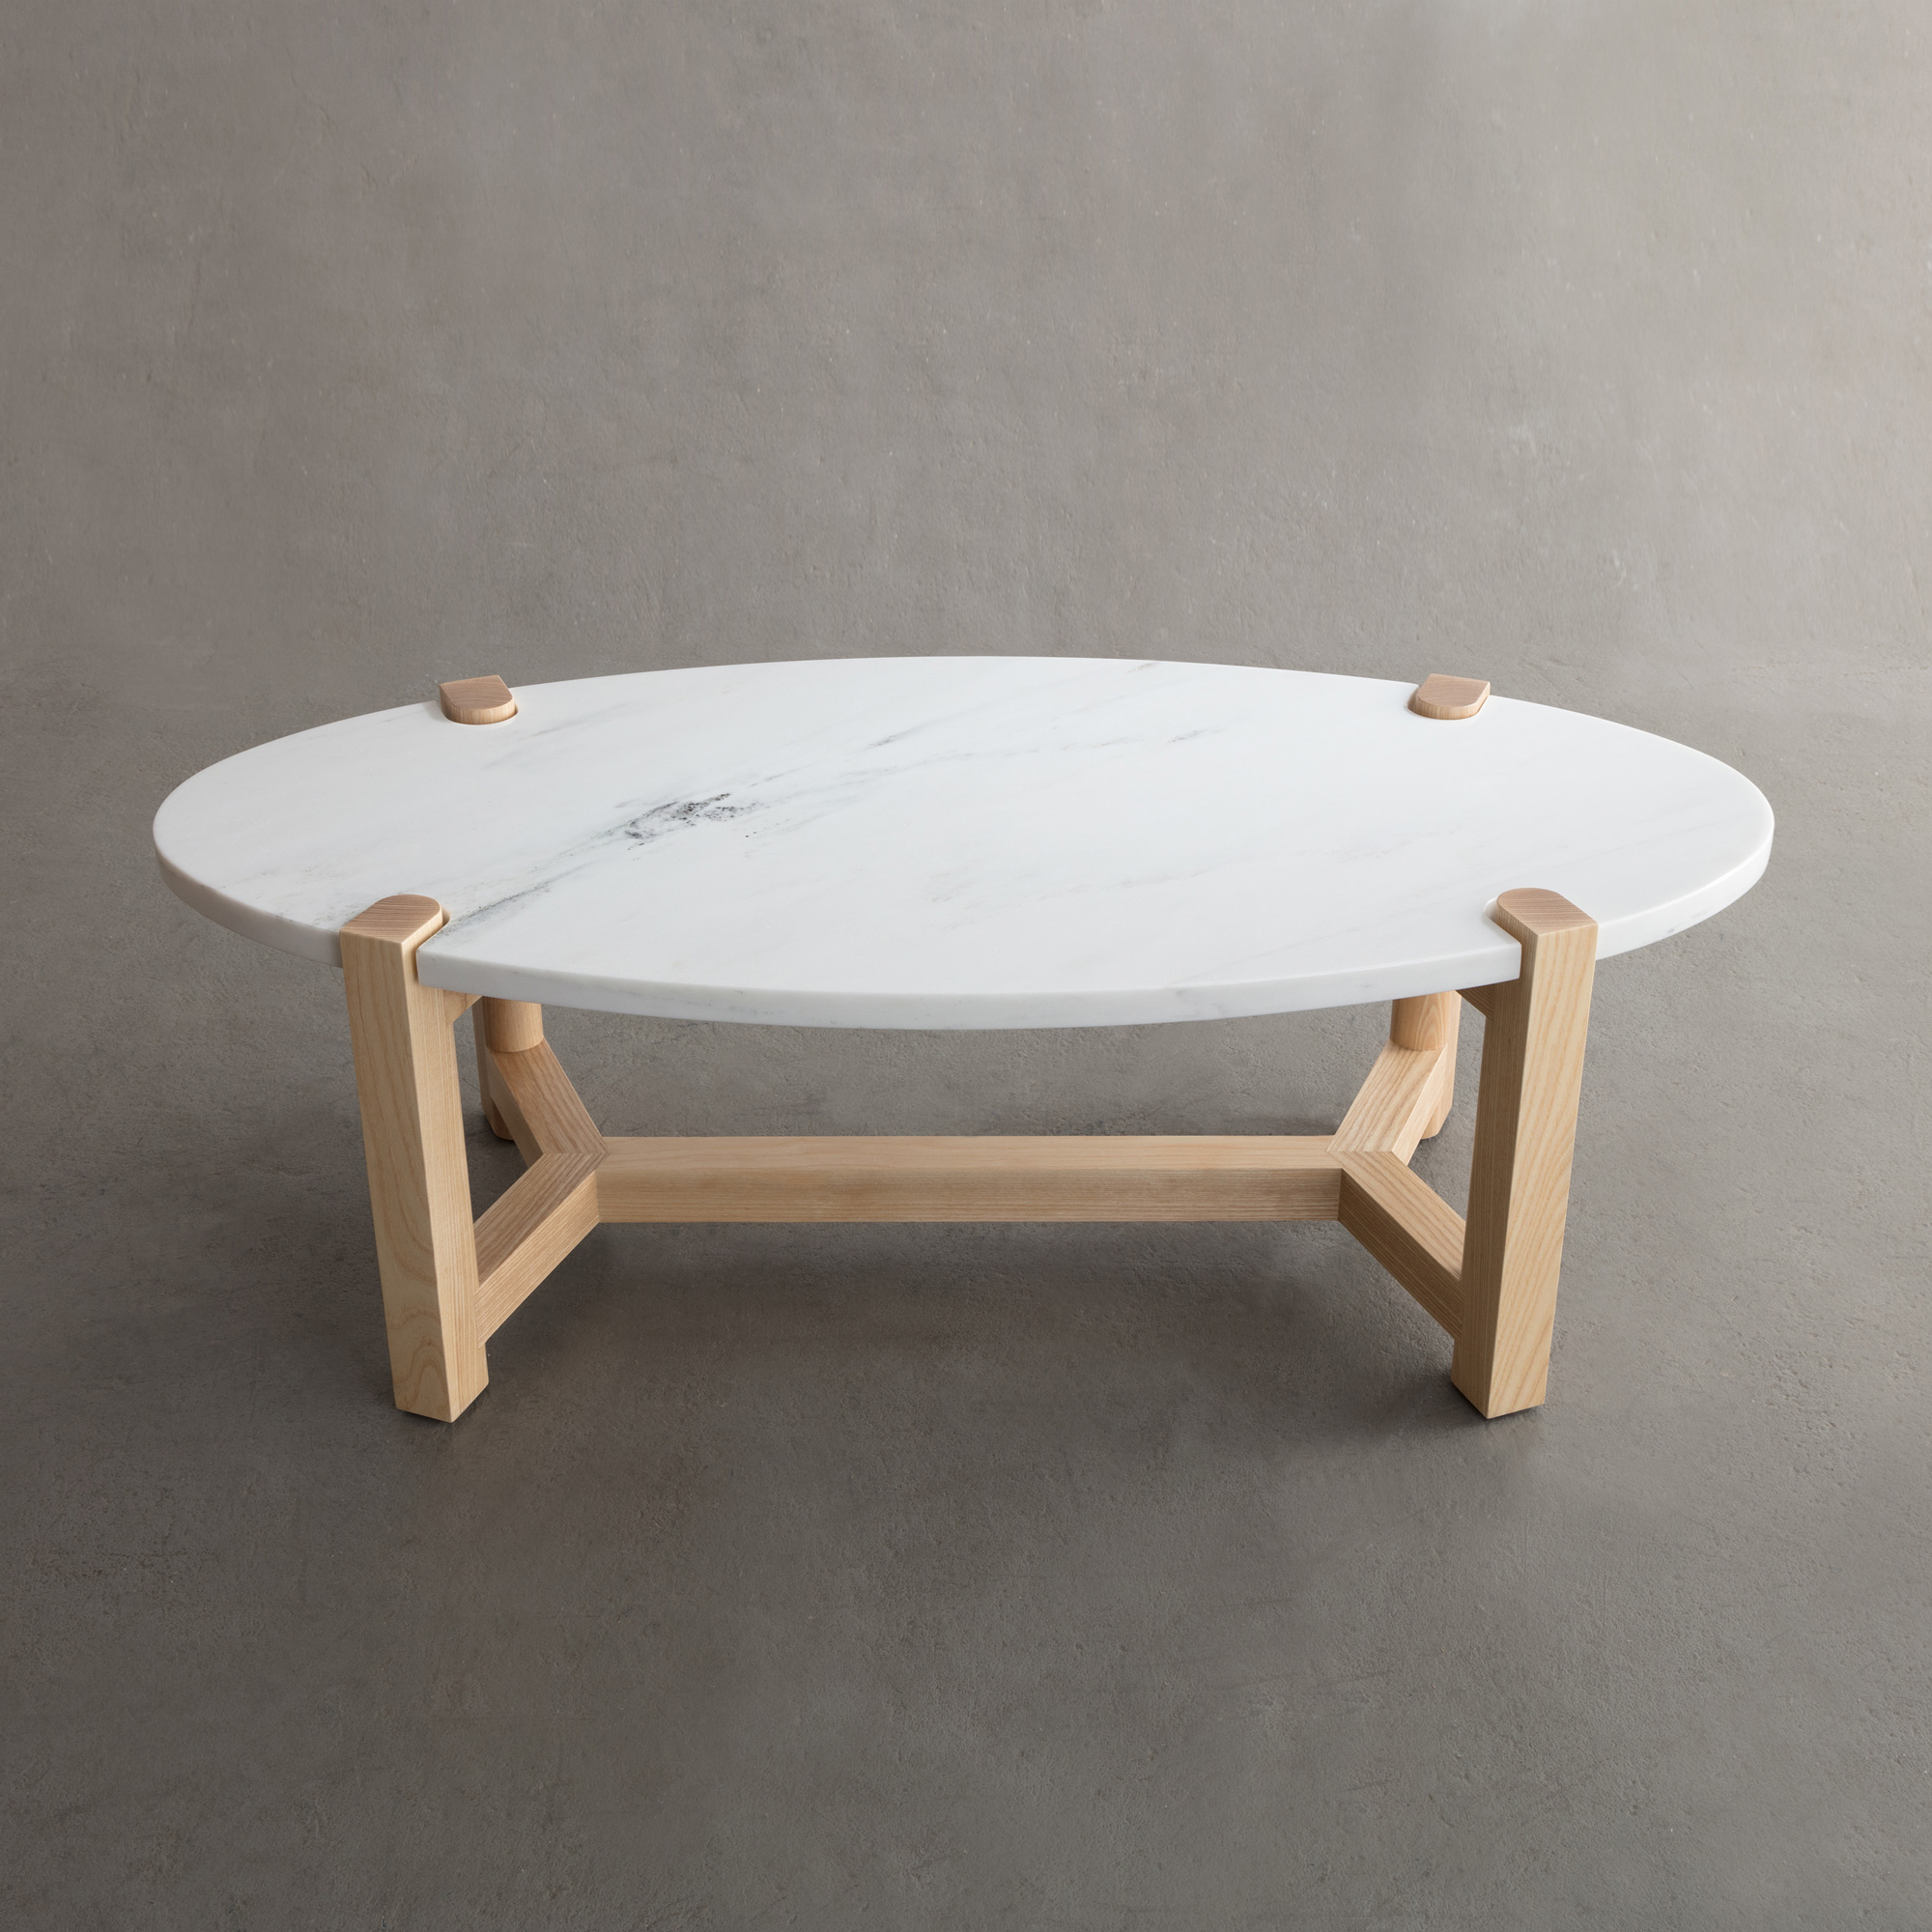 Pierce Coffee Table in ash and Danby Marble